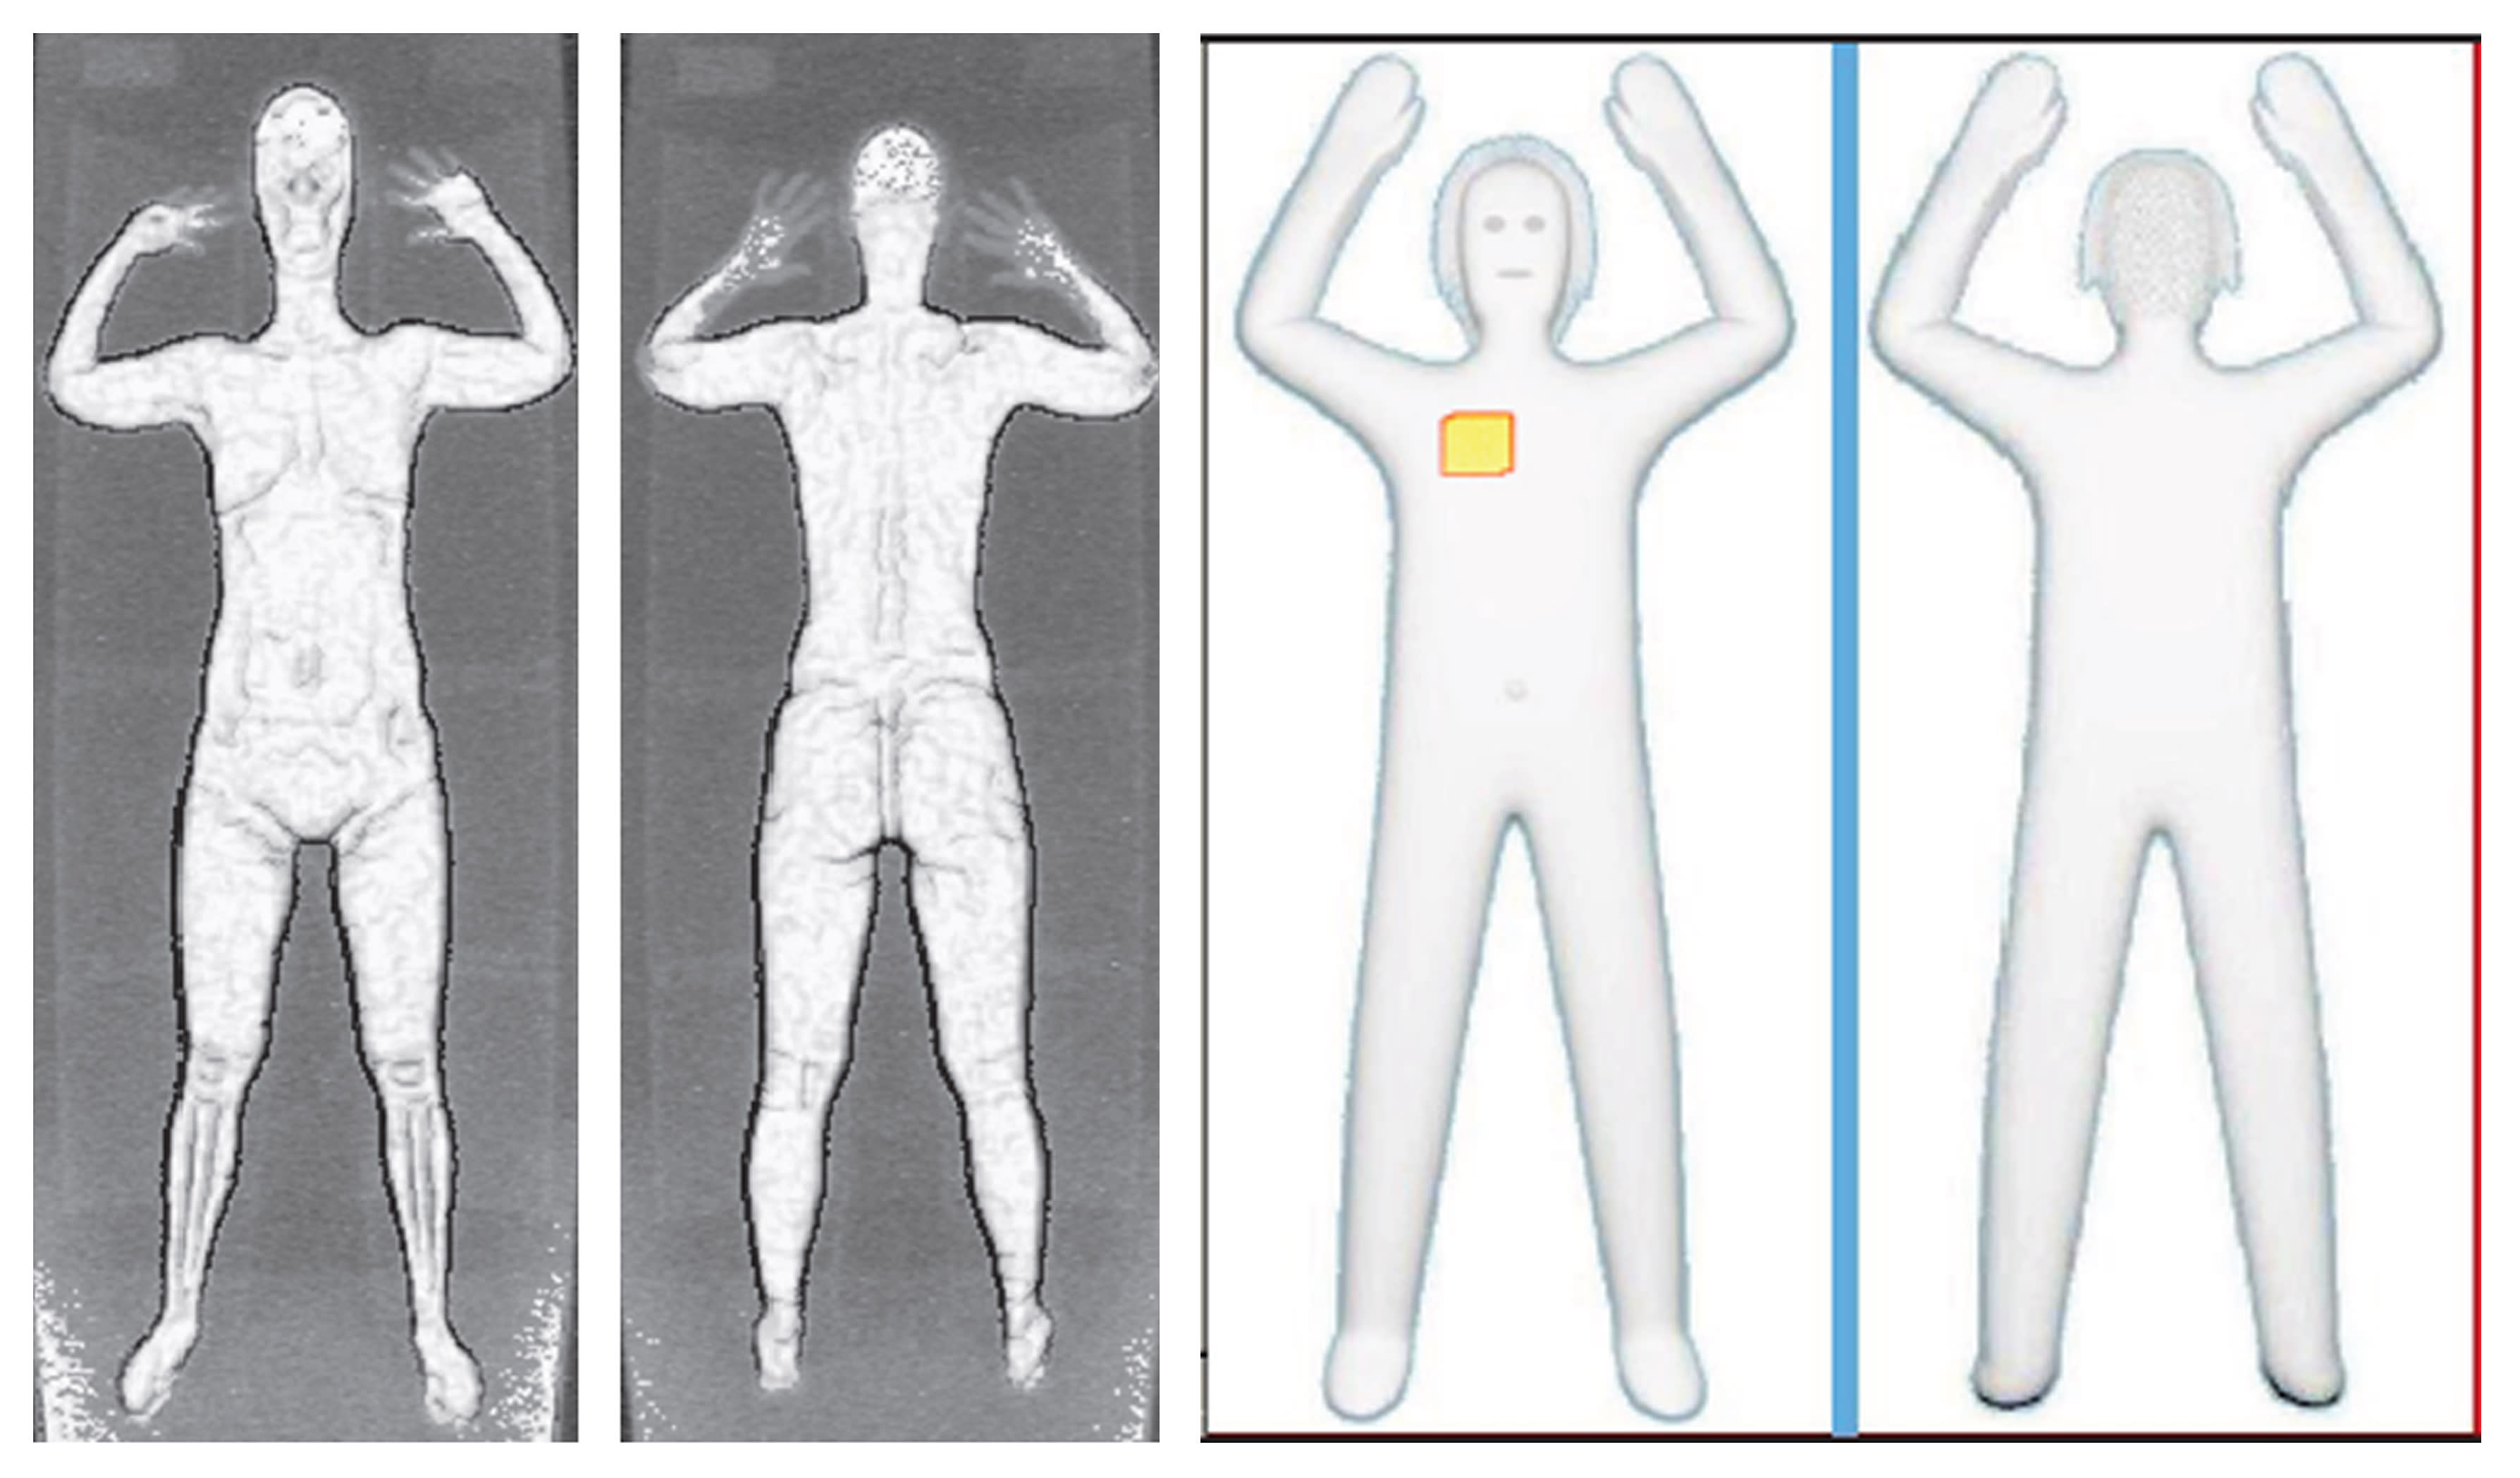 These two sets of images provided by the Transportation Security Administration are samples that show details of what TSA officers see on computer monitors when passengers pass through airport body scanners. At left are two images using backscatter advanced image X-ray technology from the huge scanners that were introduced in 2010 at O'Hare International Airport in Chicago and other airports. At right are images from new scanners using new millimeter wave technology that produces a cartoon-like outline rather than naked images of passengers produced by using X-rays. (AP Photo/Transportation Security Administration)